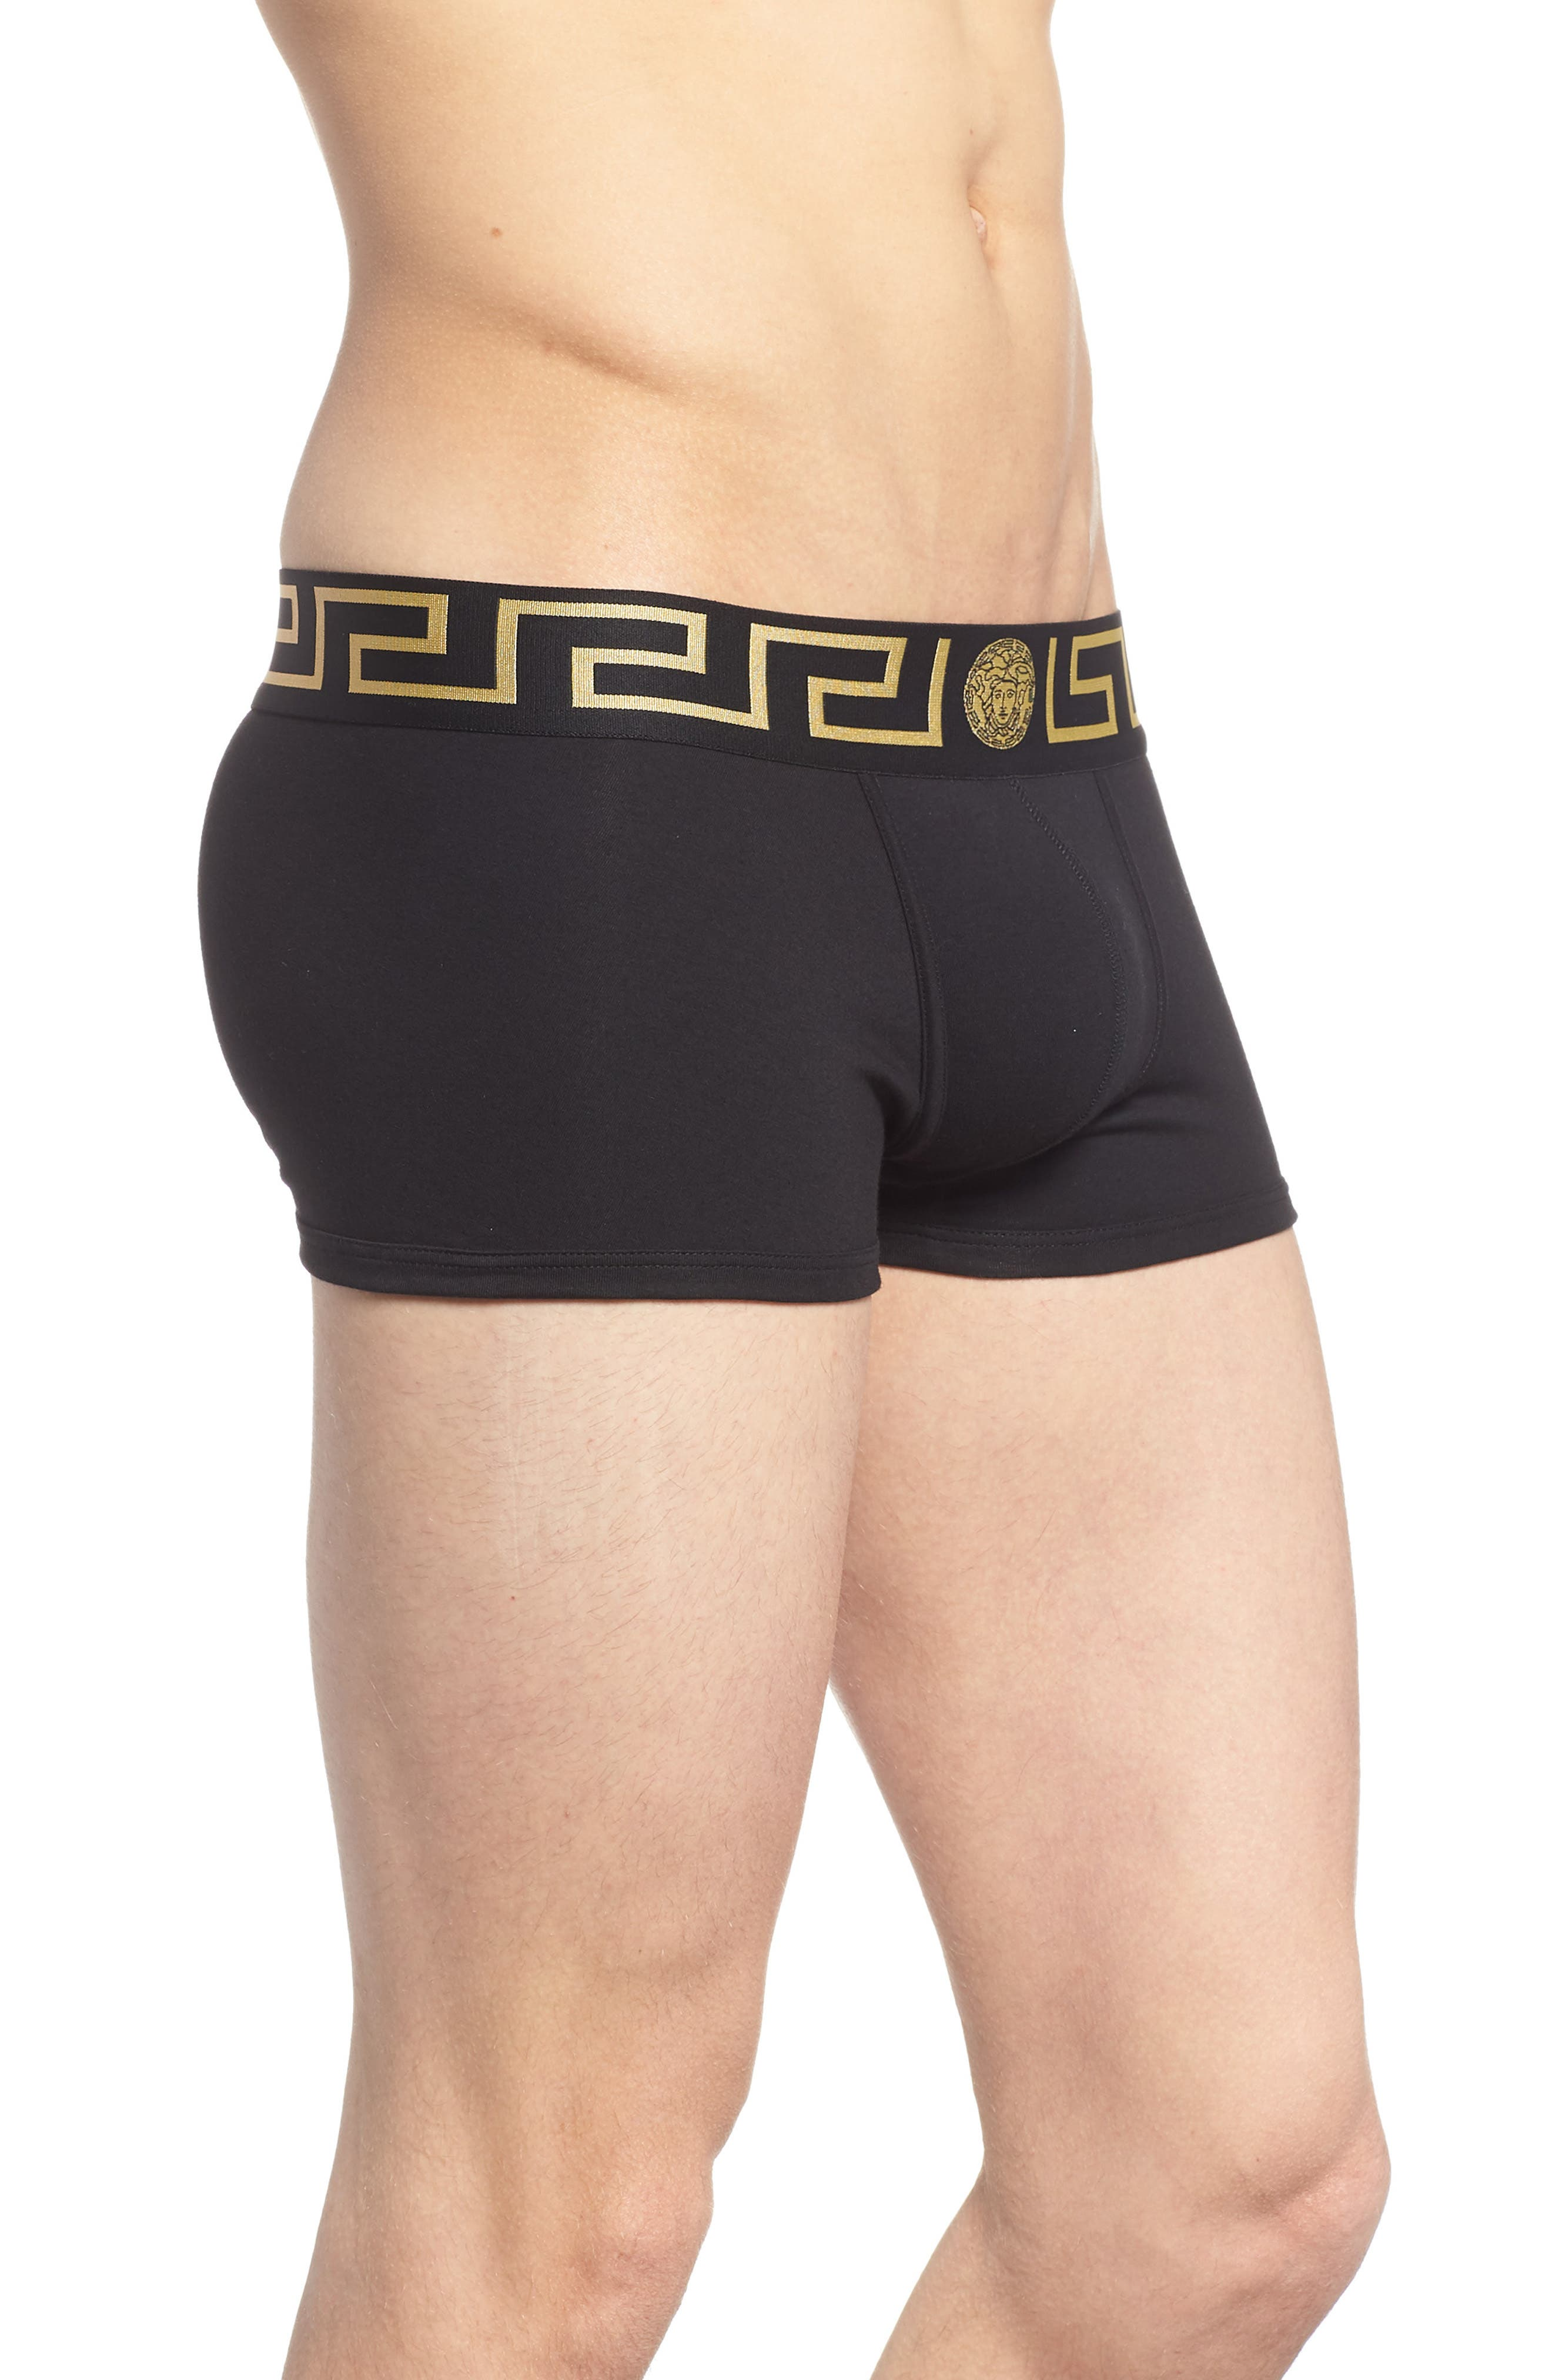 Versace Collection 2-Pack Low Rise Trunks,                             Alternate thumbnail 4, color,                             Black/ Gold